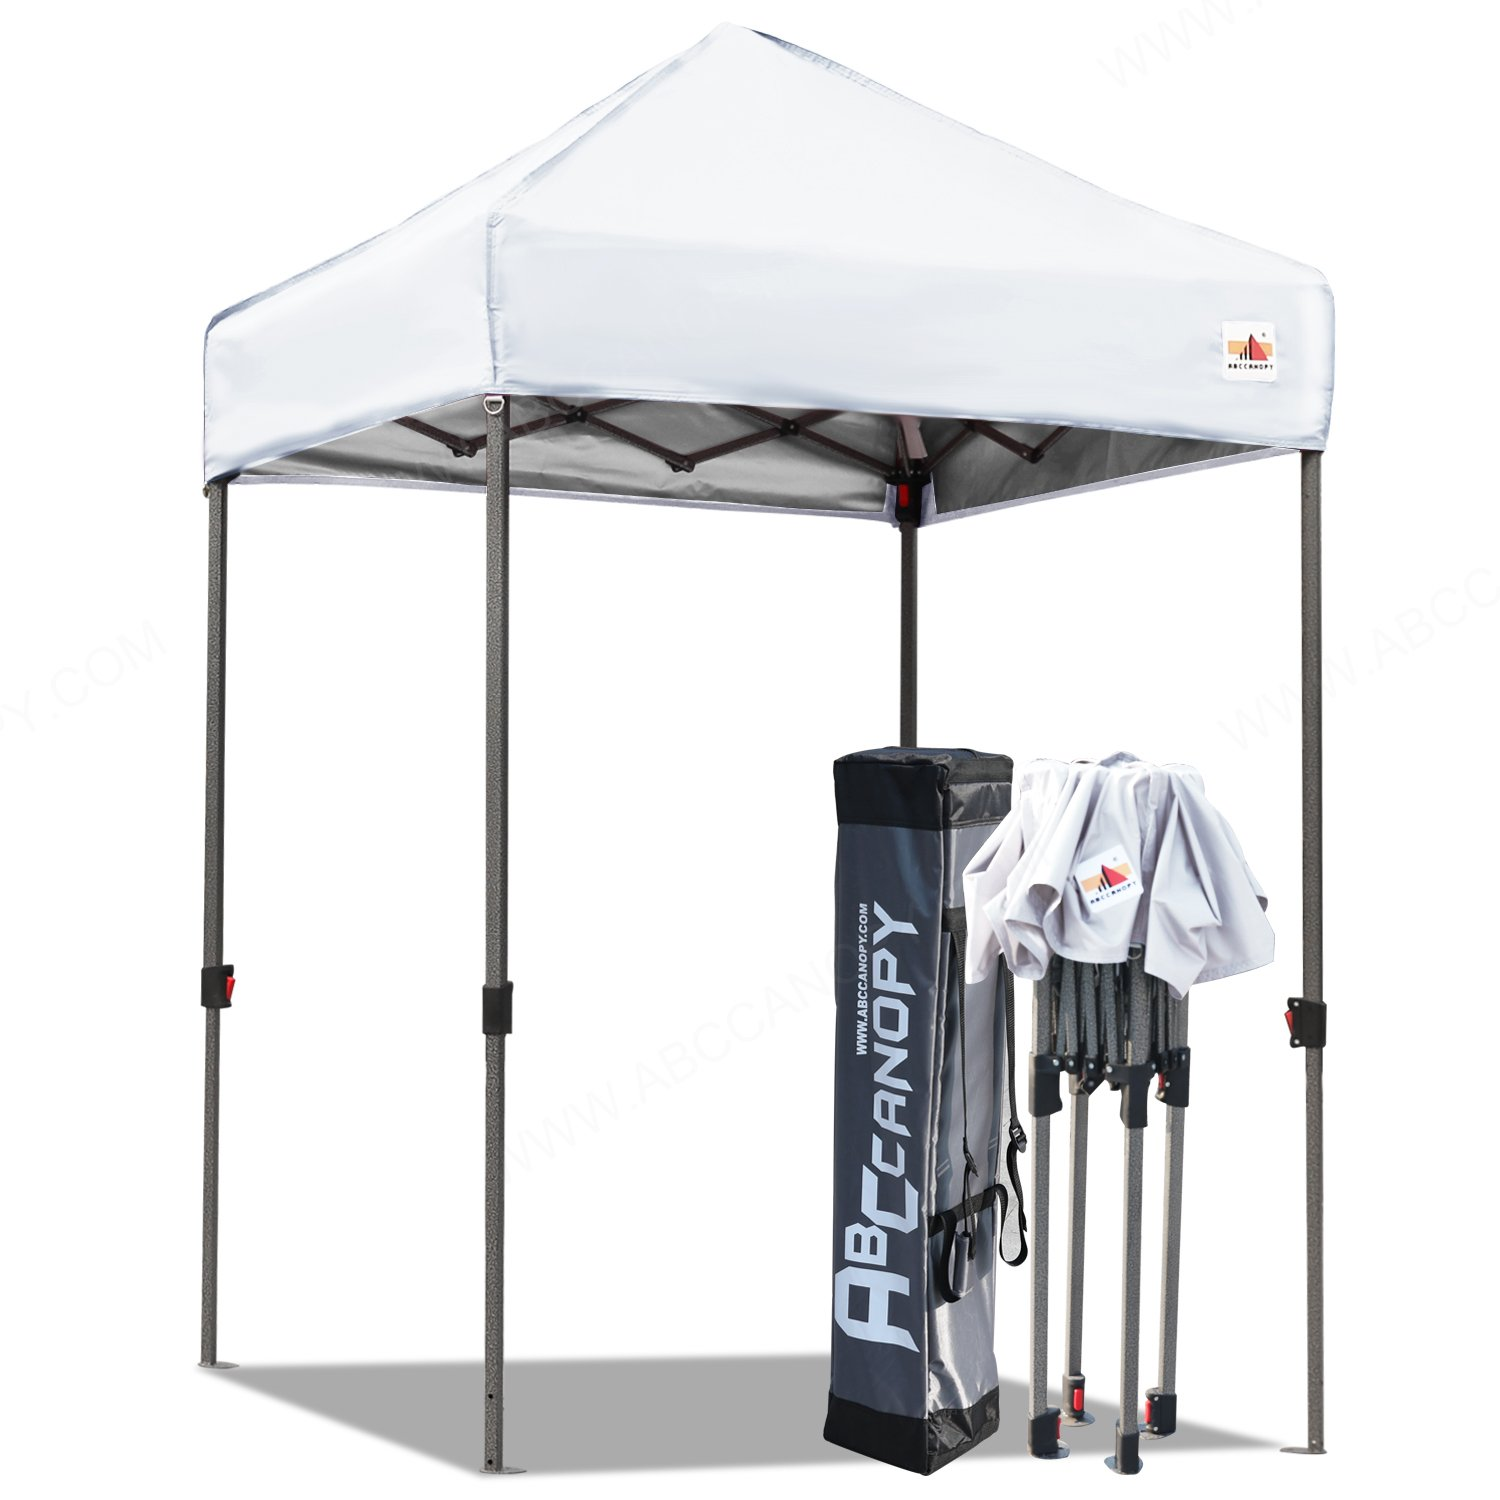 ABCCANOPY Pop Up Canopy 5'x5' Portable Canopy Tent Bonus Carry Bag and Tent Stakes (White-1)